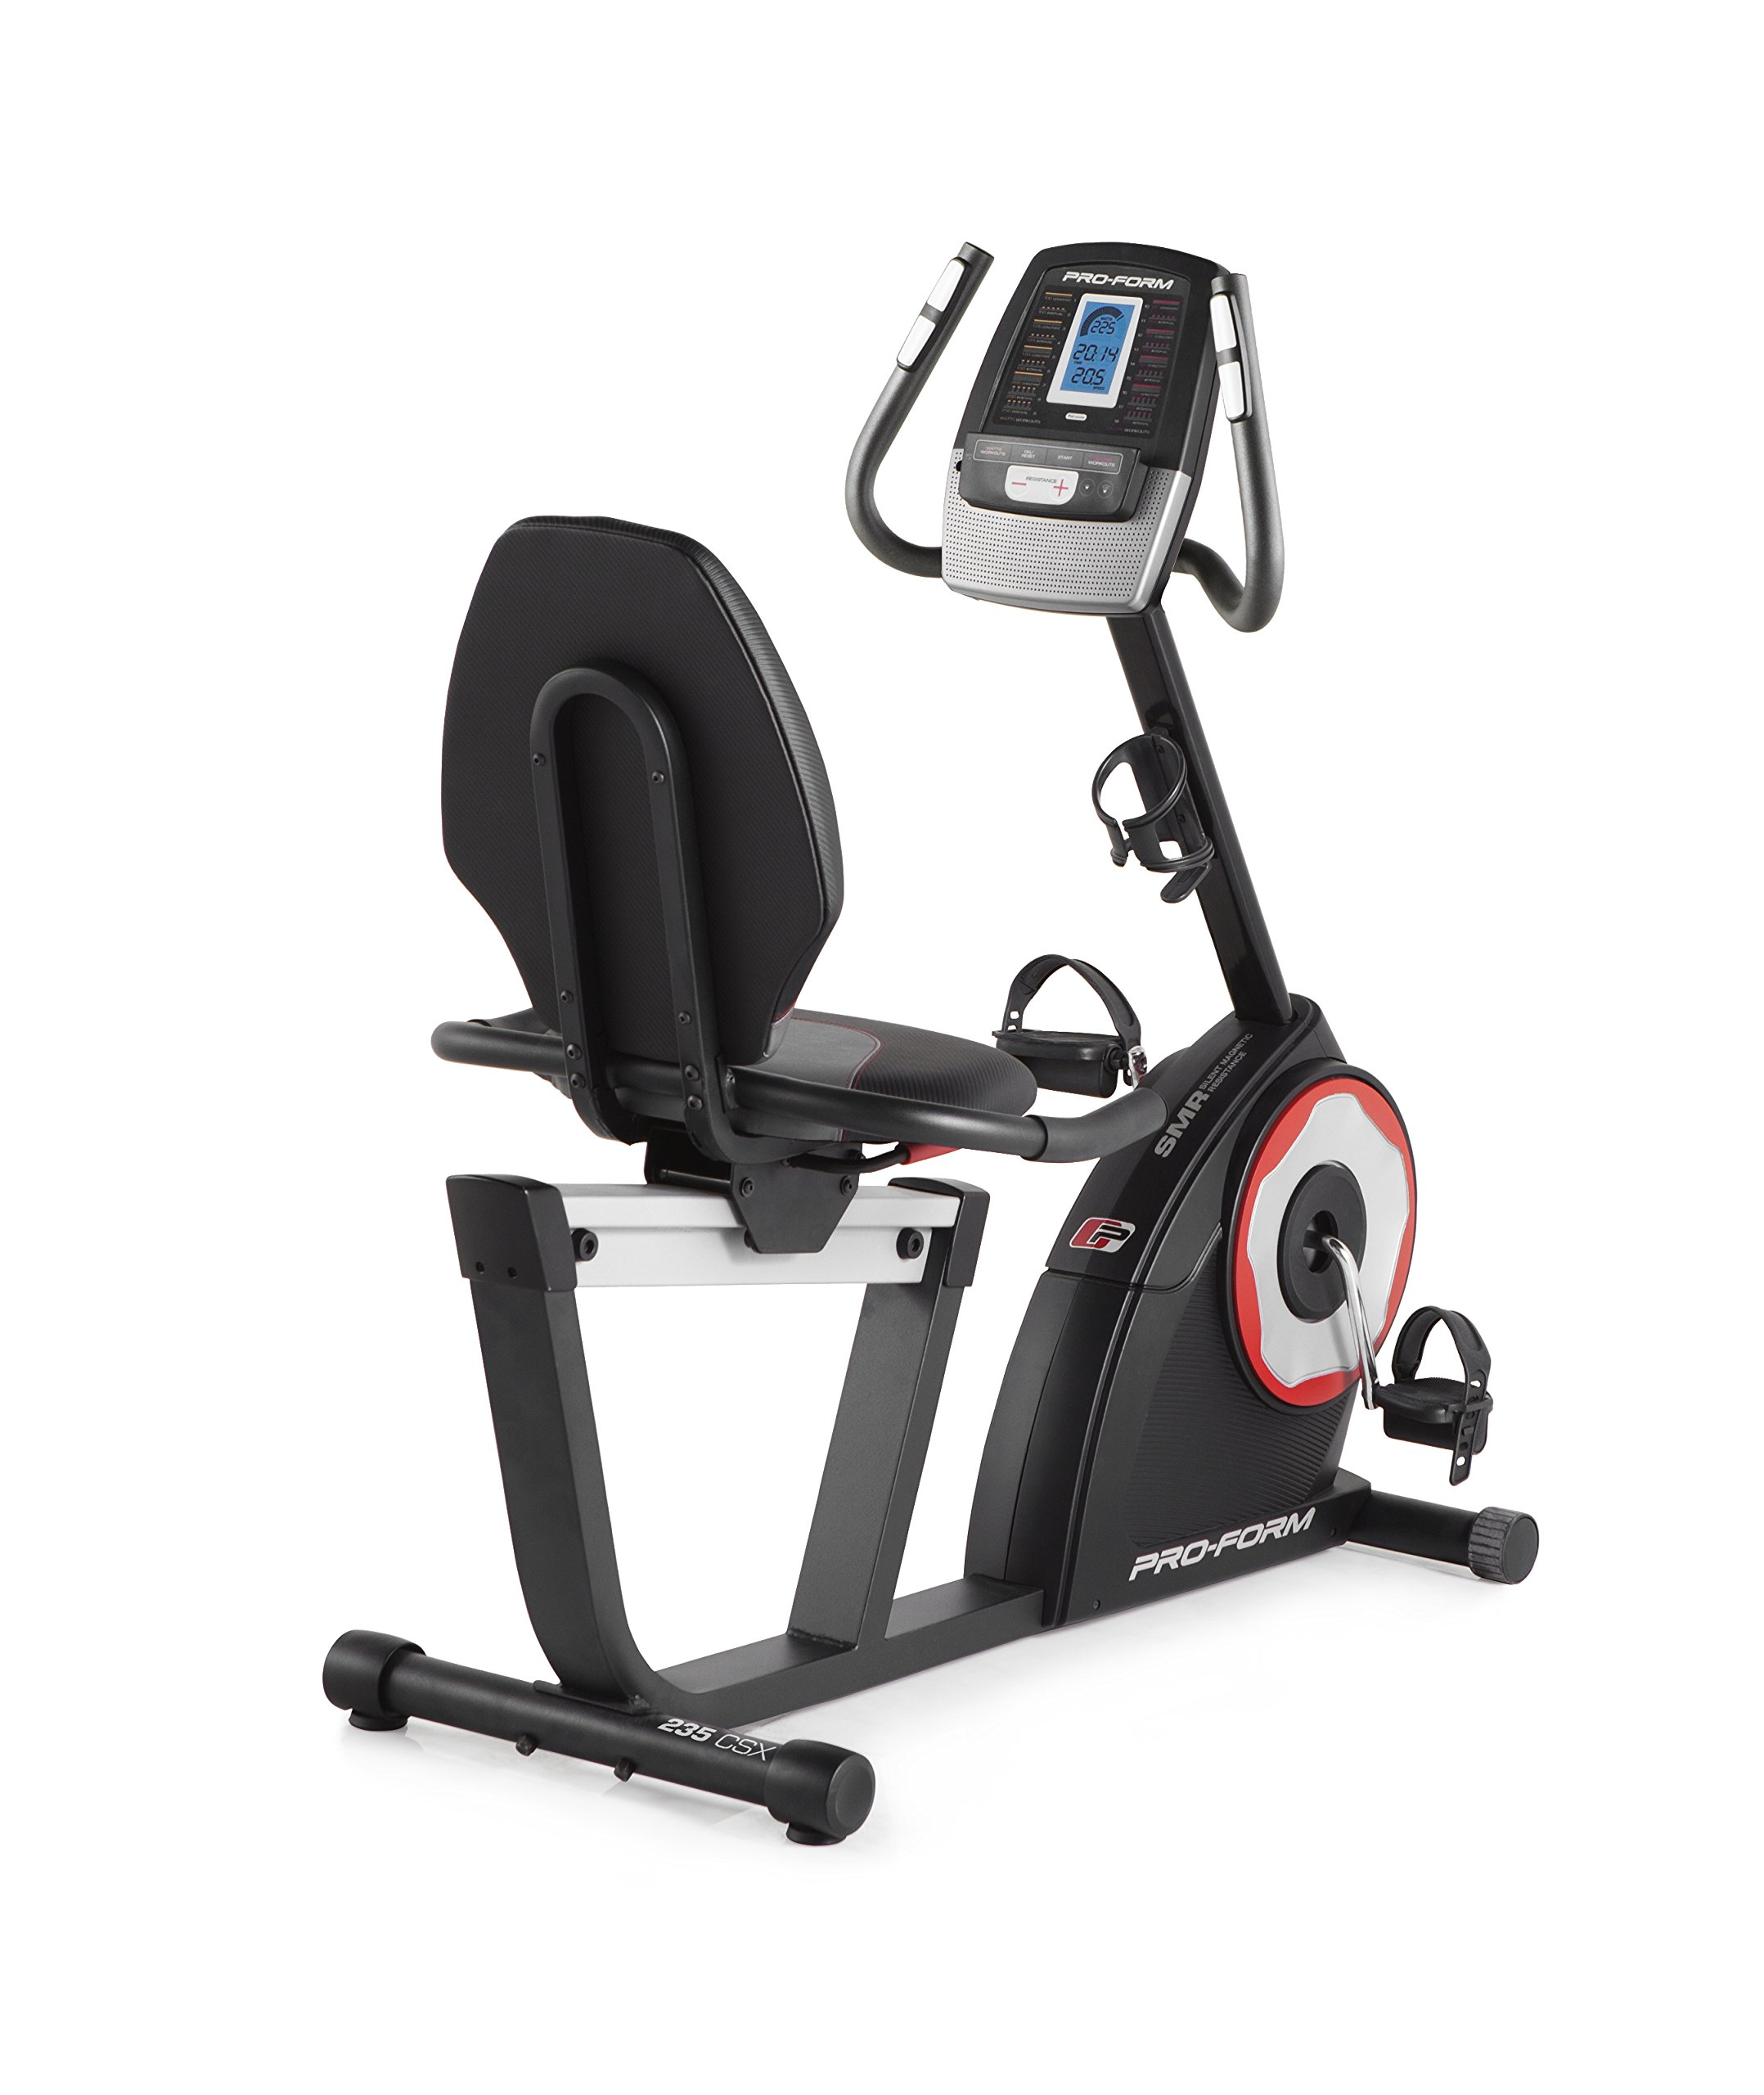 Proform 350 Spx Exercise Bike Pfex02914: ProForm 235 CSX Exercise Bike 2019